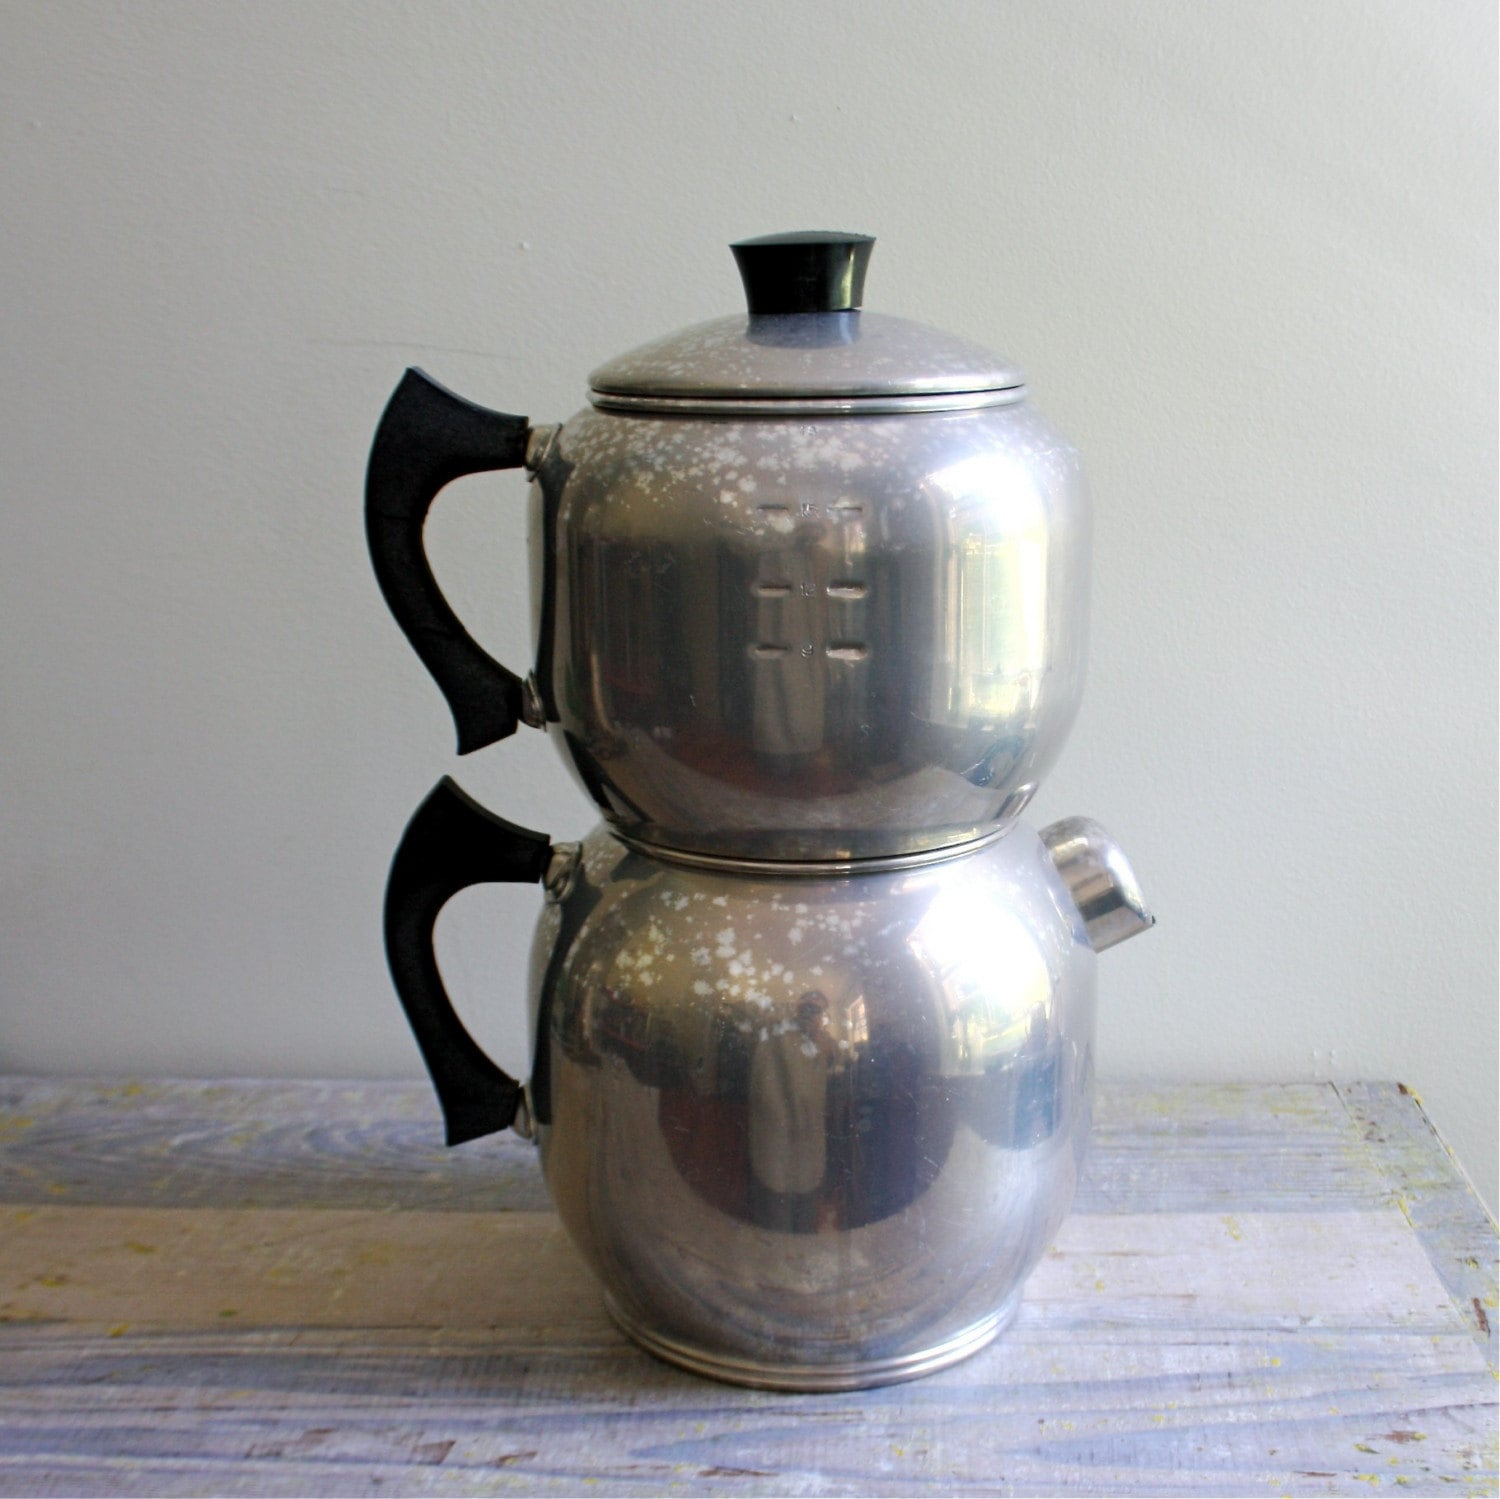 Coffee Pot Planter Vintage West Bend Coffee Percolator By Ethanollie On Etsy